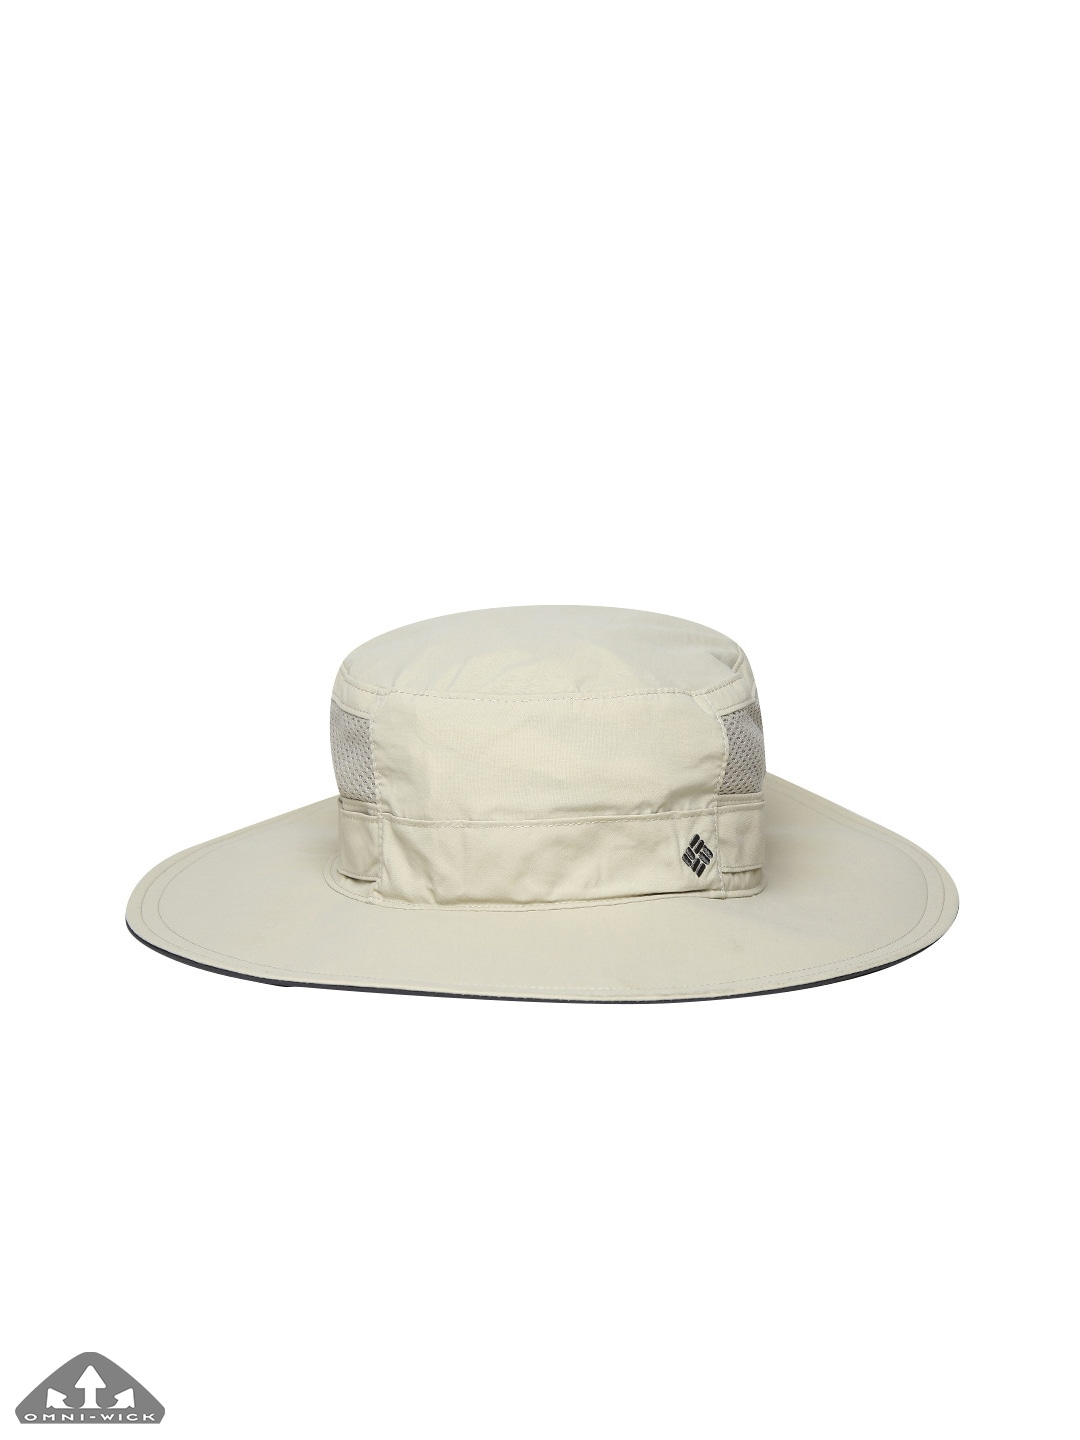 a3f103f45a7 Columbia - Buy Columbia Clothing   Accessories online